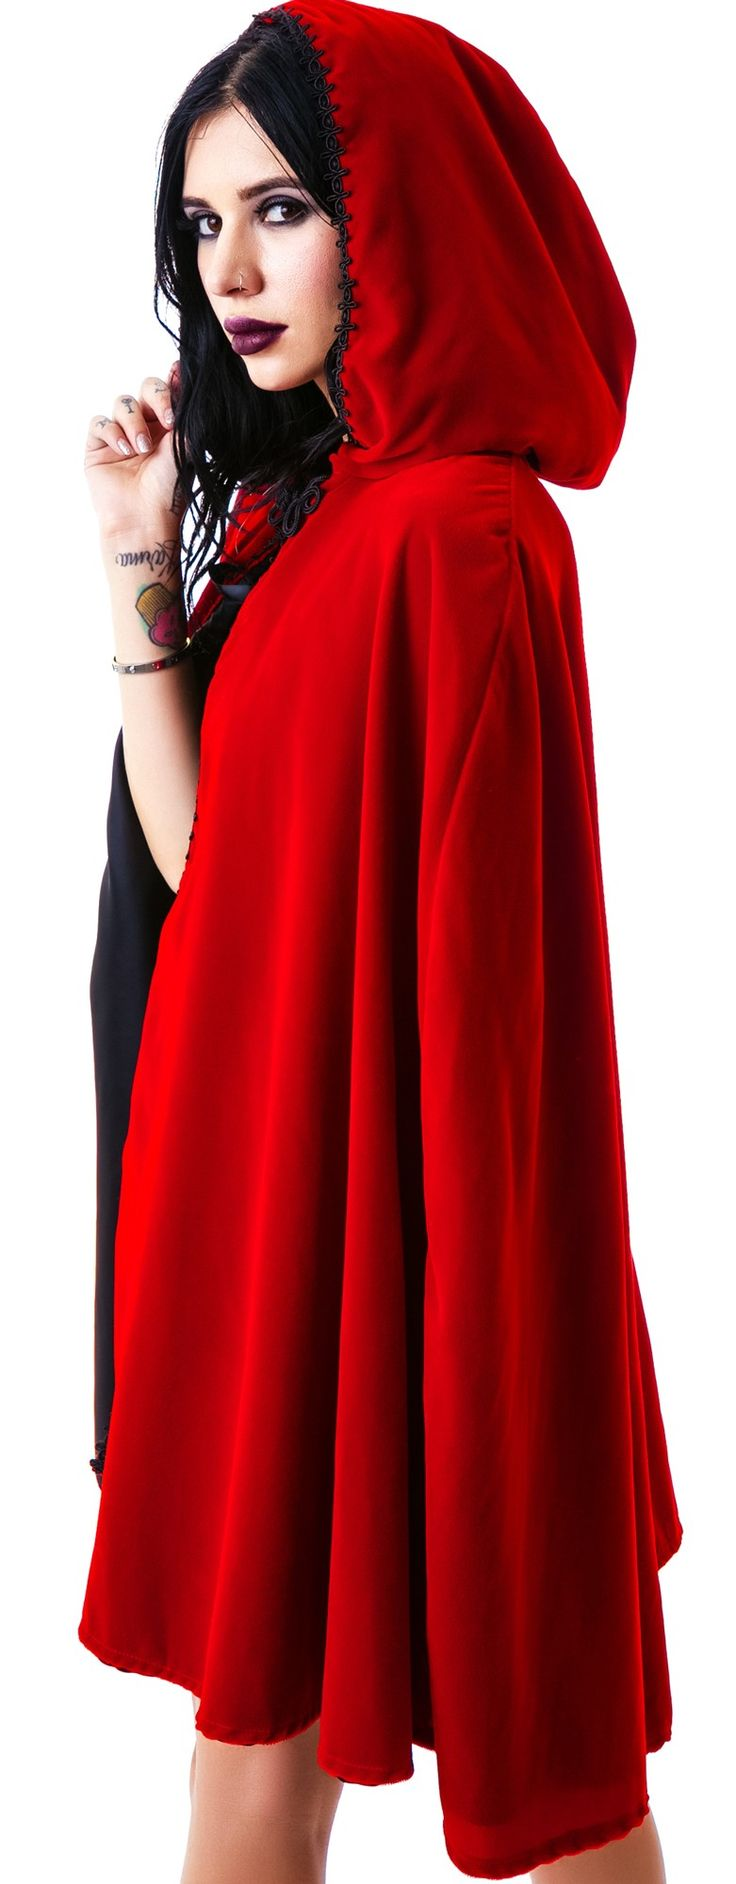 Hooded cape google search clothing shapes designs for Cape designs